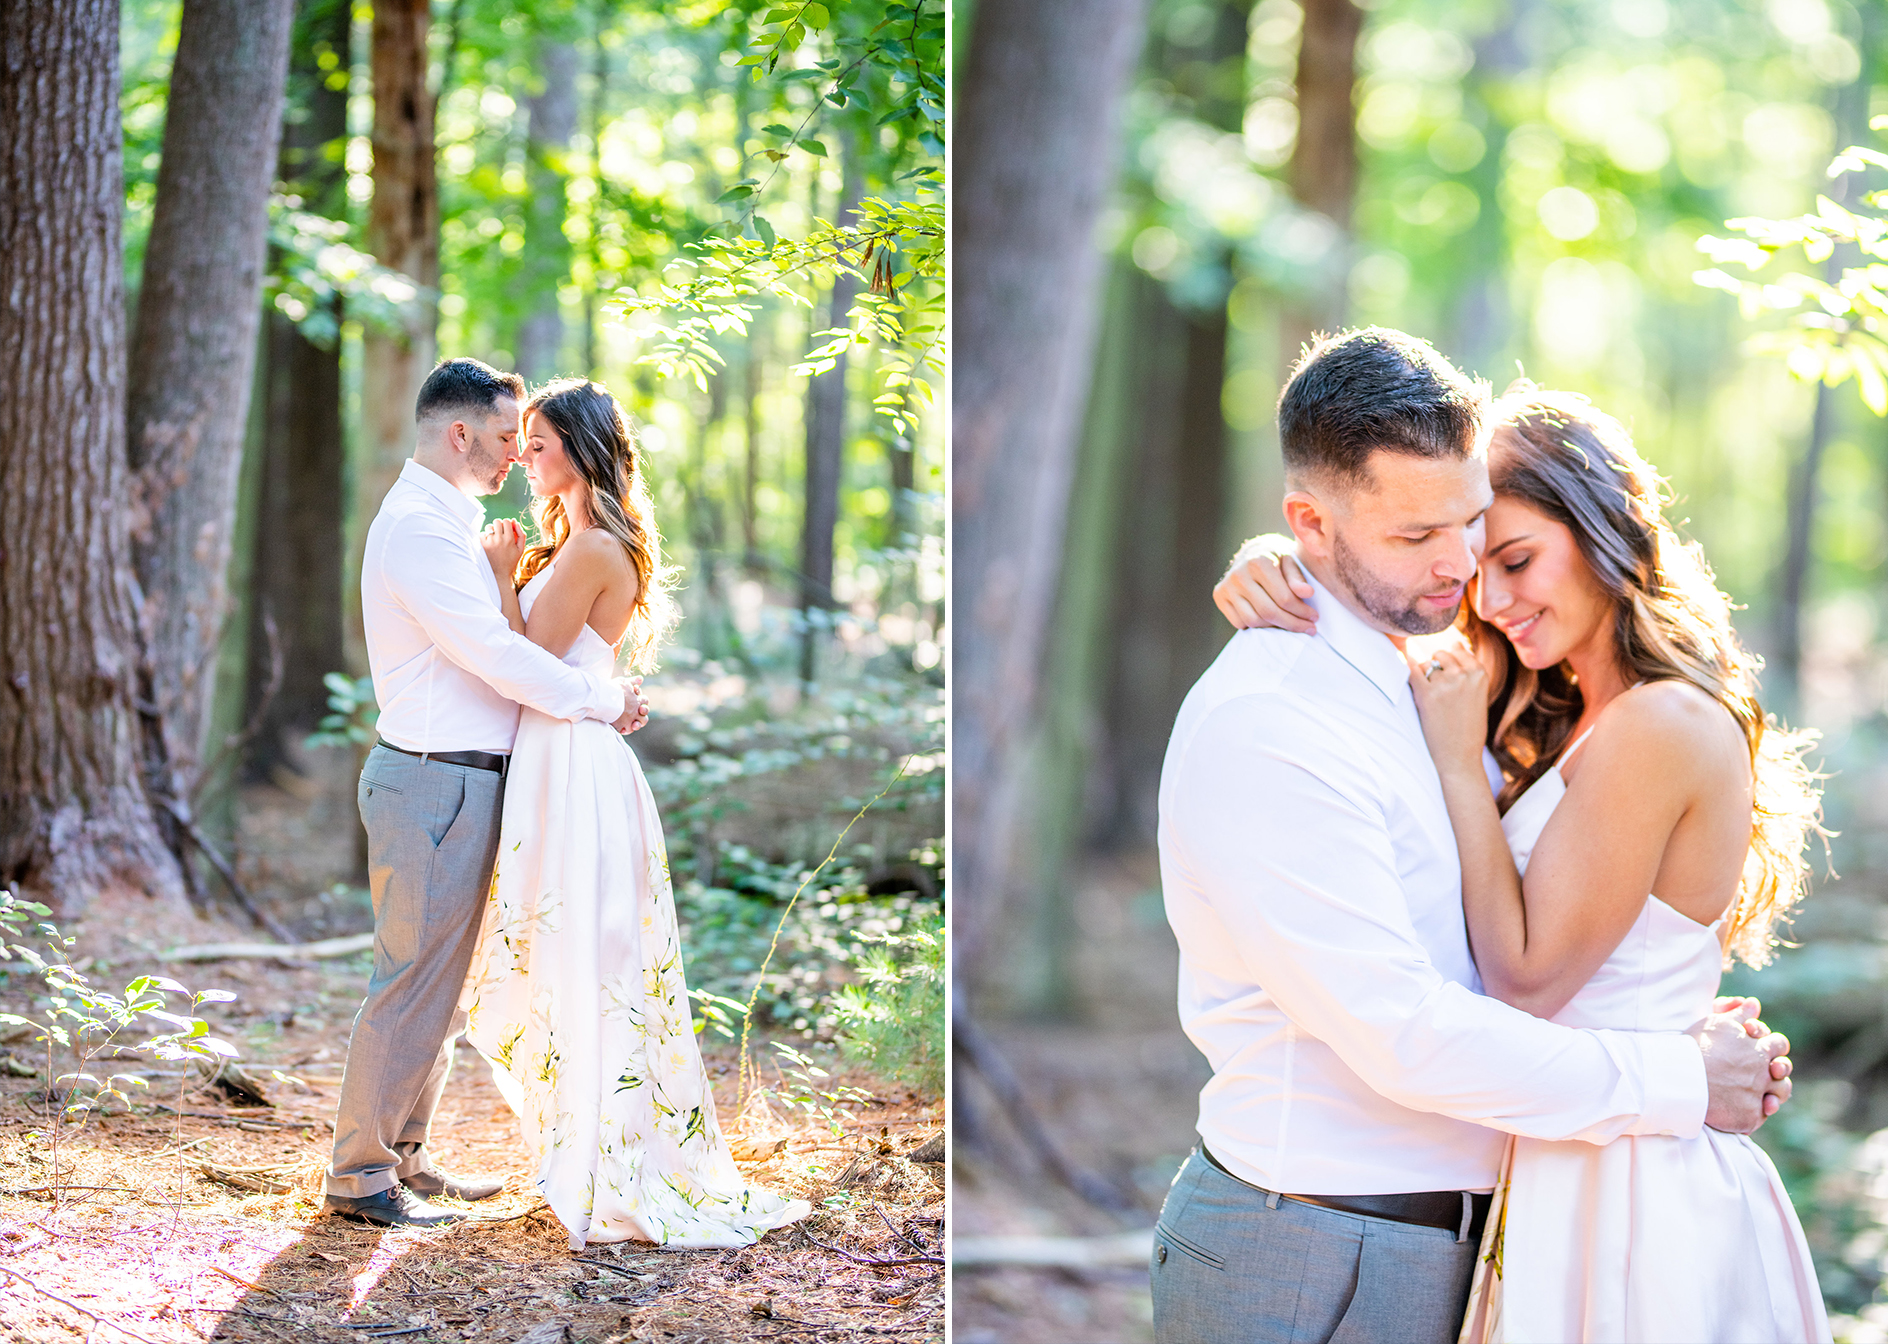 Prosser Pines Engagement Shoot | Long Island Wedding Photographer | Hamptons Wedding Photographer7